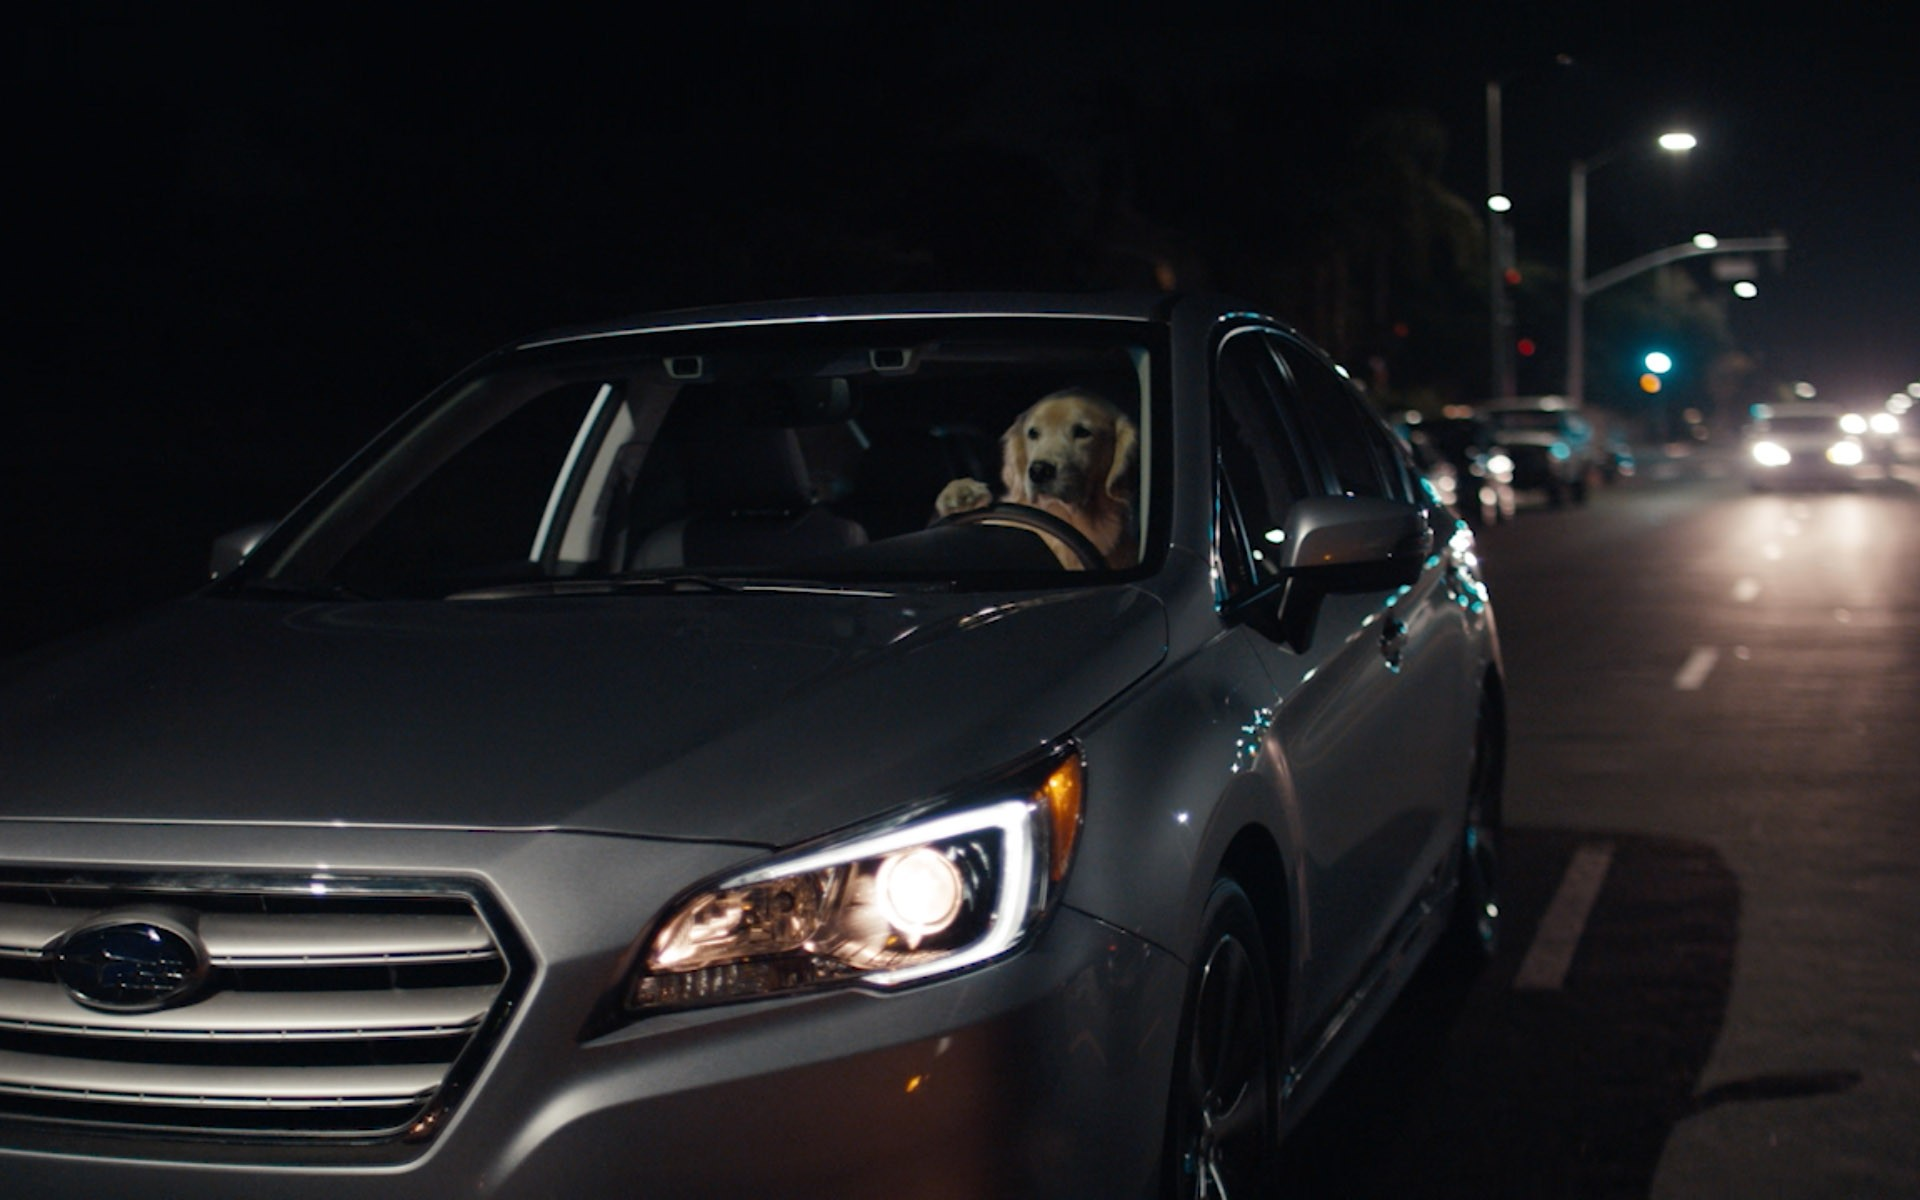 Puppy Bowl 2016: Subaru's Family of Lovable Dogs Drive Cars, Melt Hearts - autoevolution